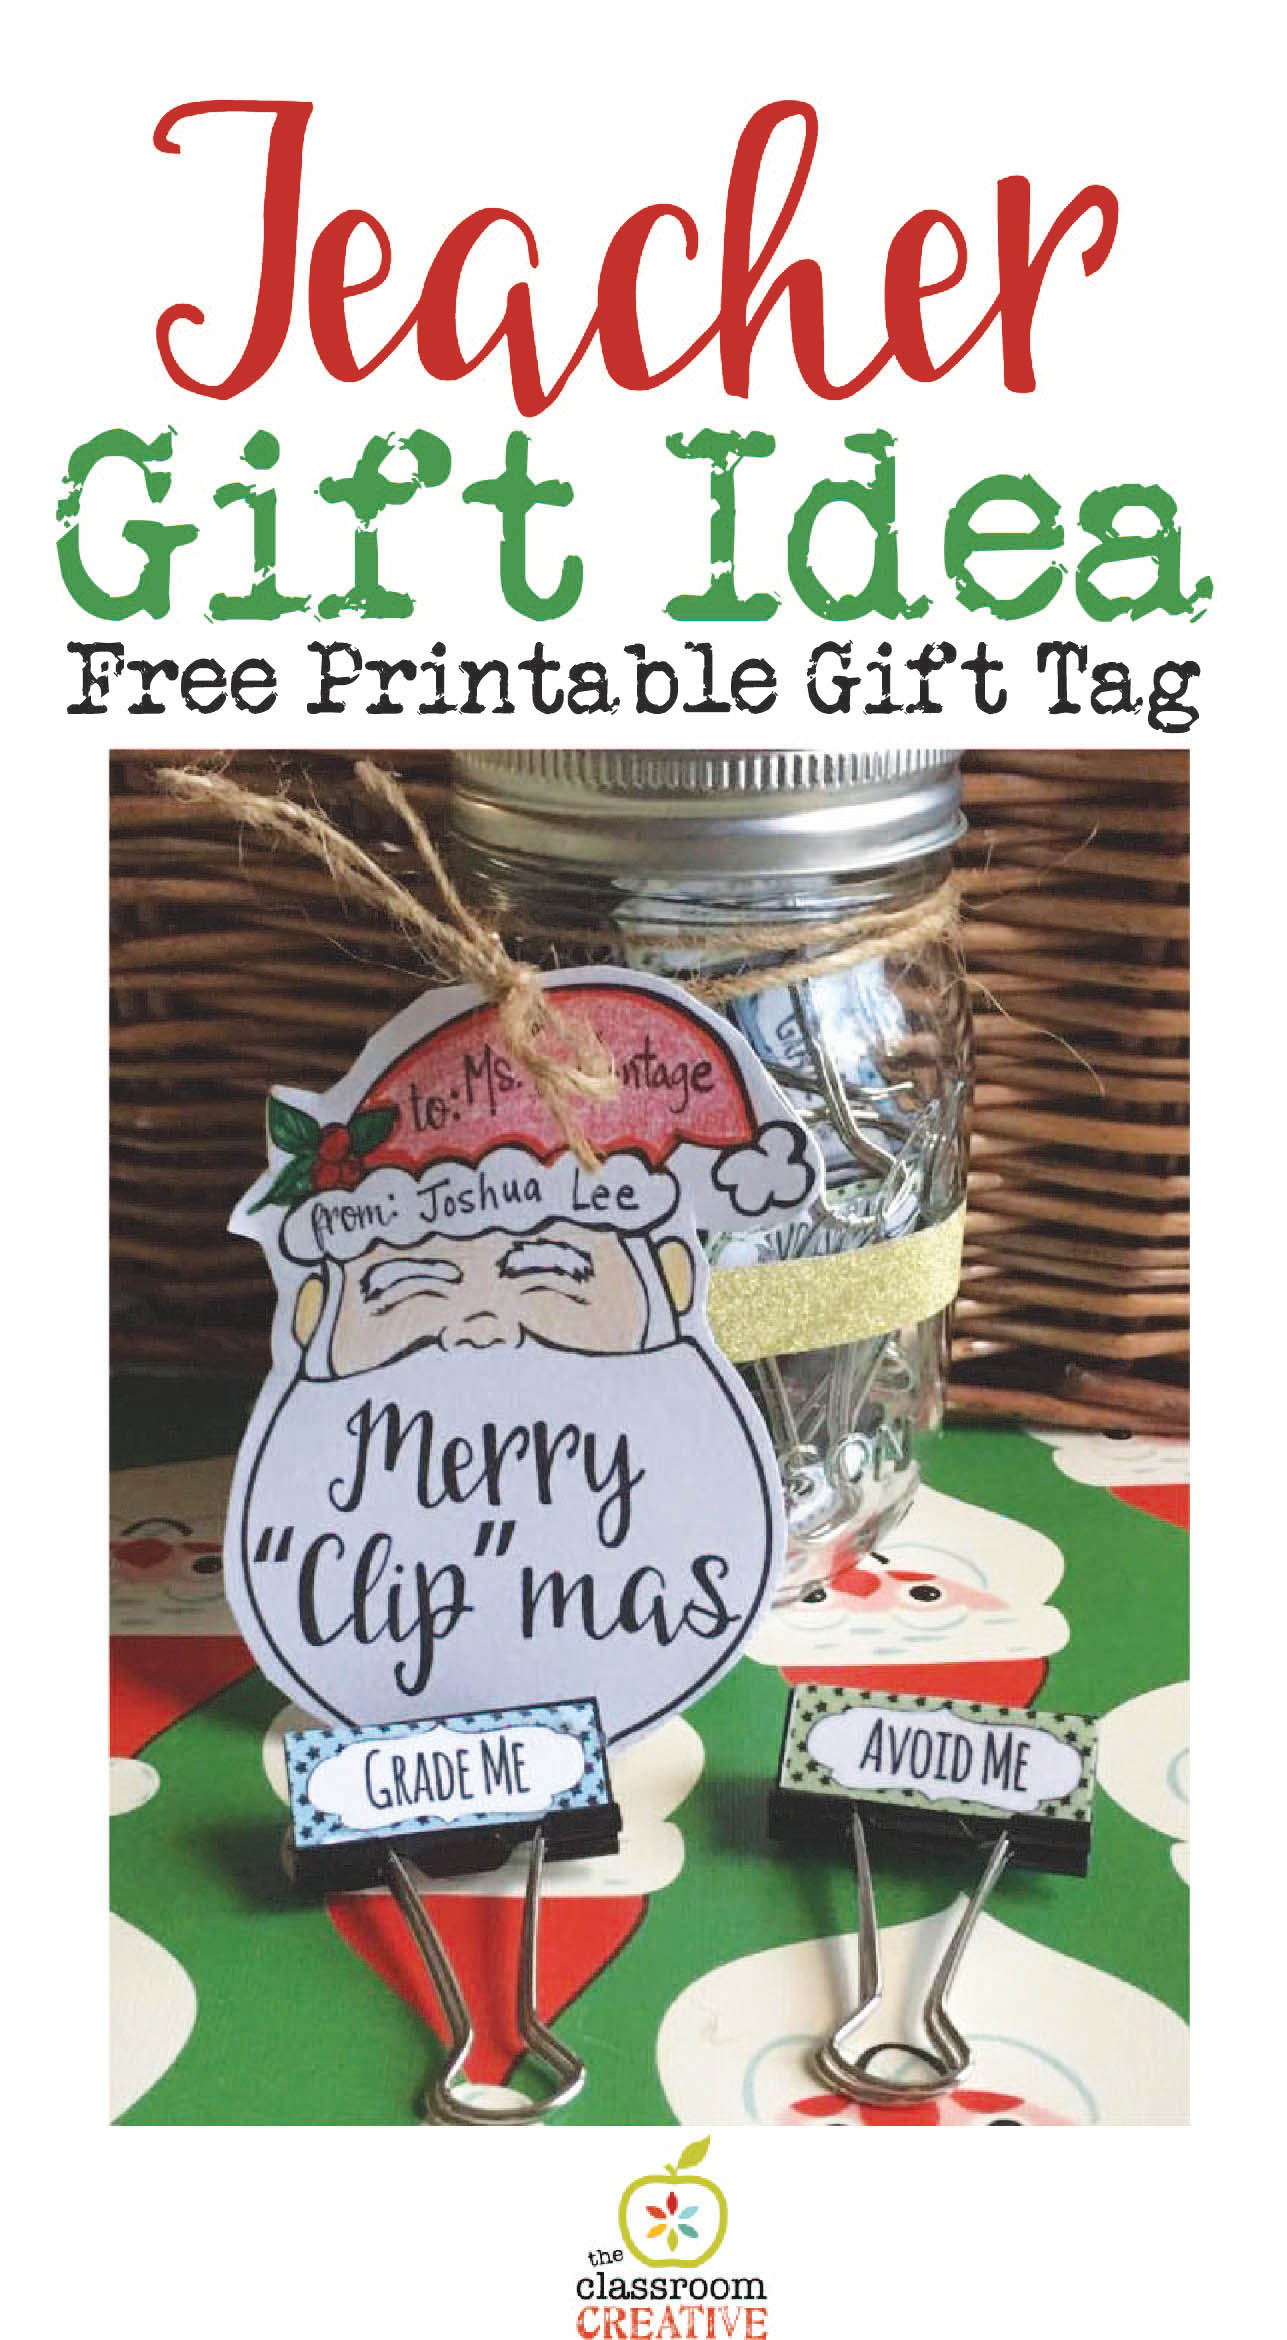 Teacher Gift Idea: Custom Binder Clips with a Free Printable Gift Tag